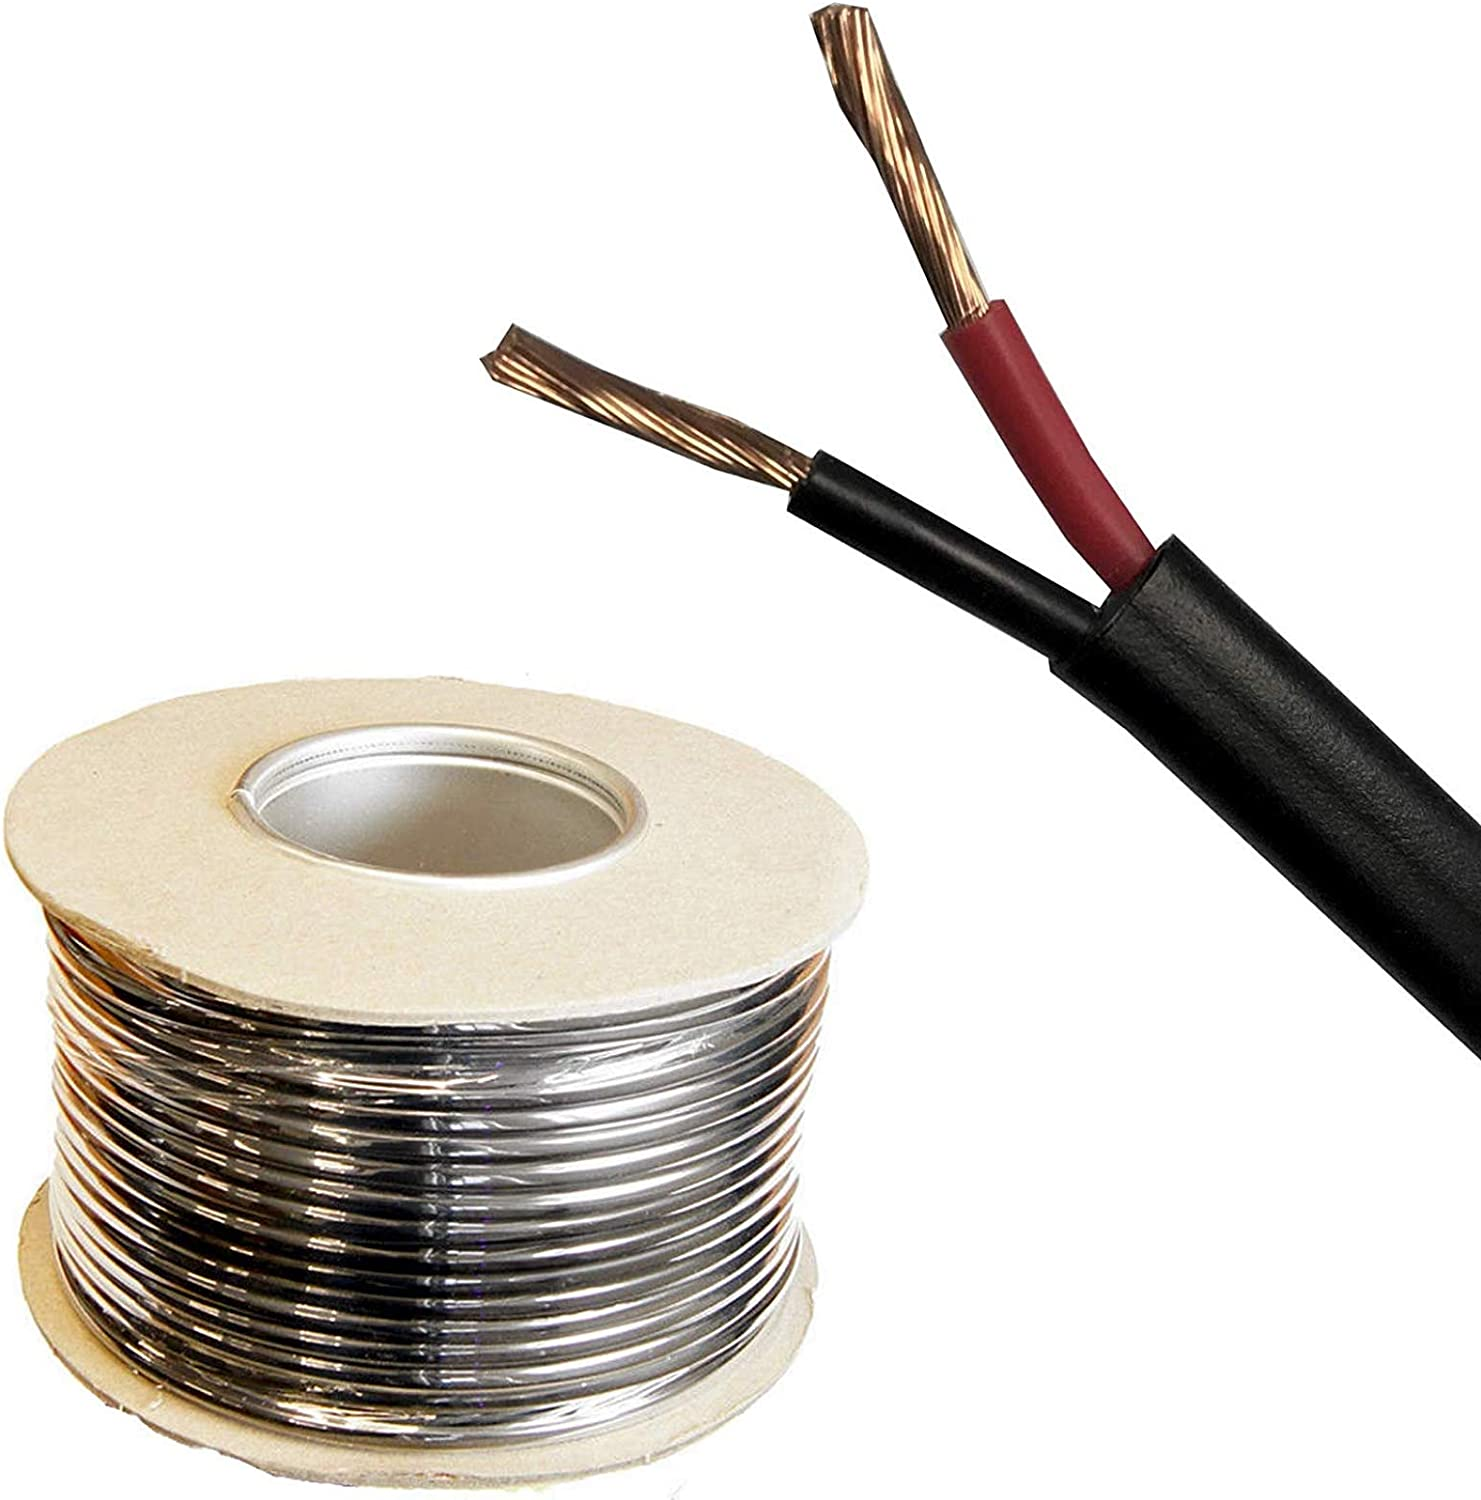 30M METRE ROLL//REEL BLACK//RED TWIN CORE FLAT CABLE//WIRE 2 X 16 STRAND 11A AMP